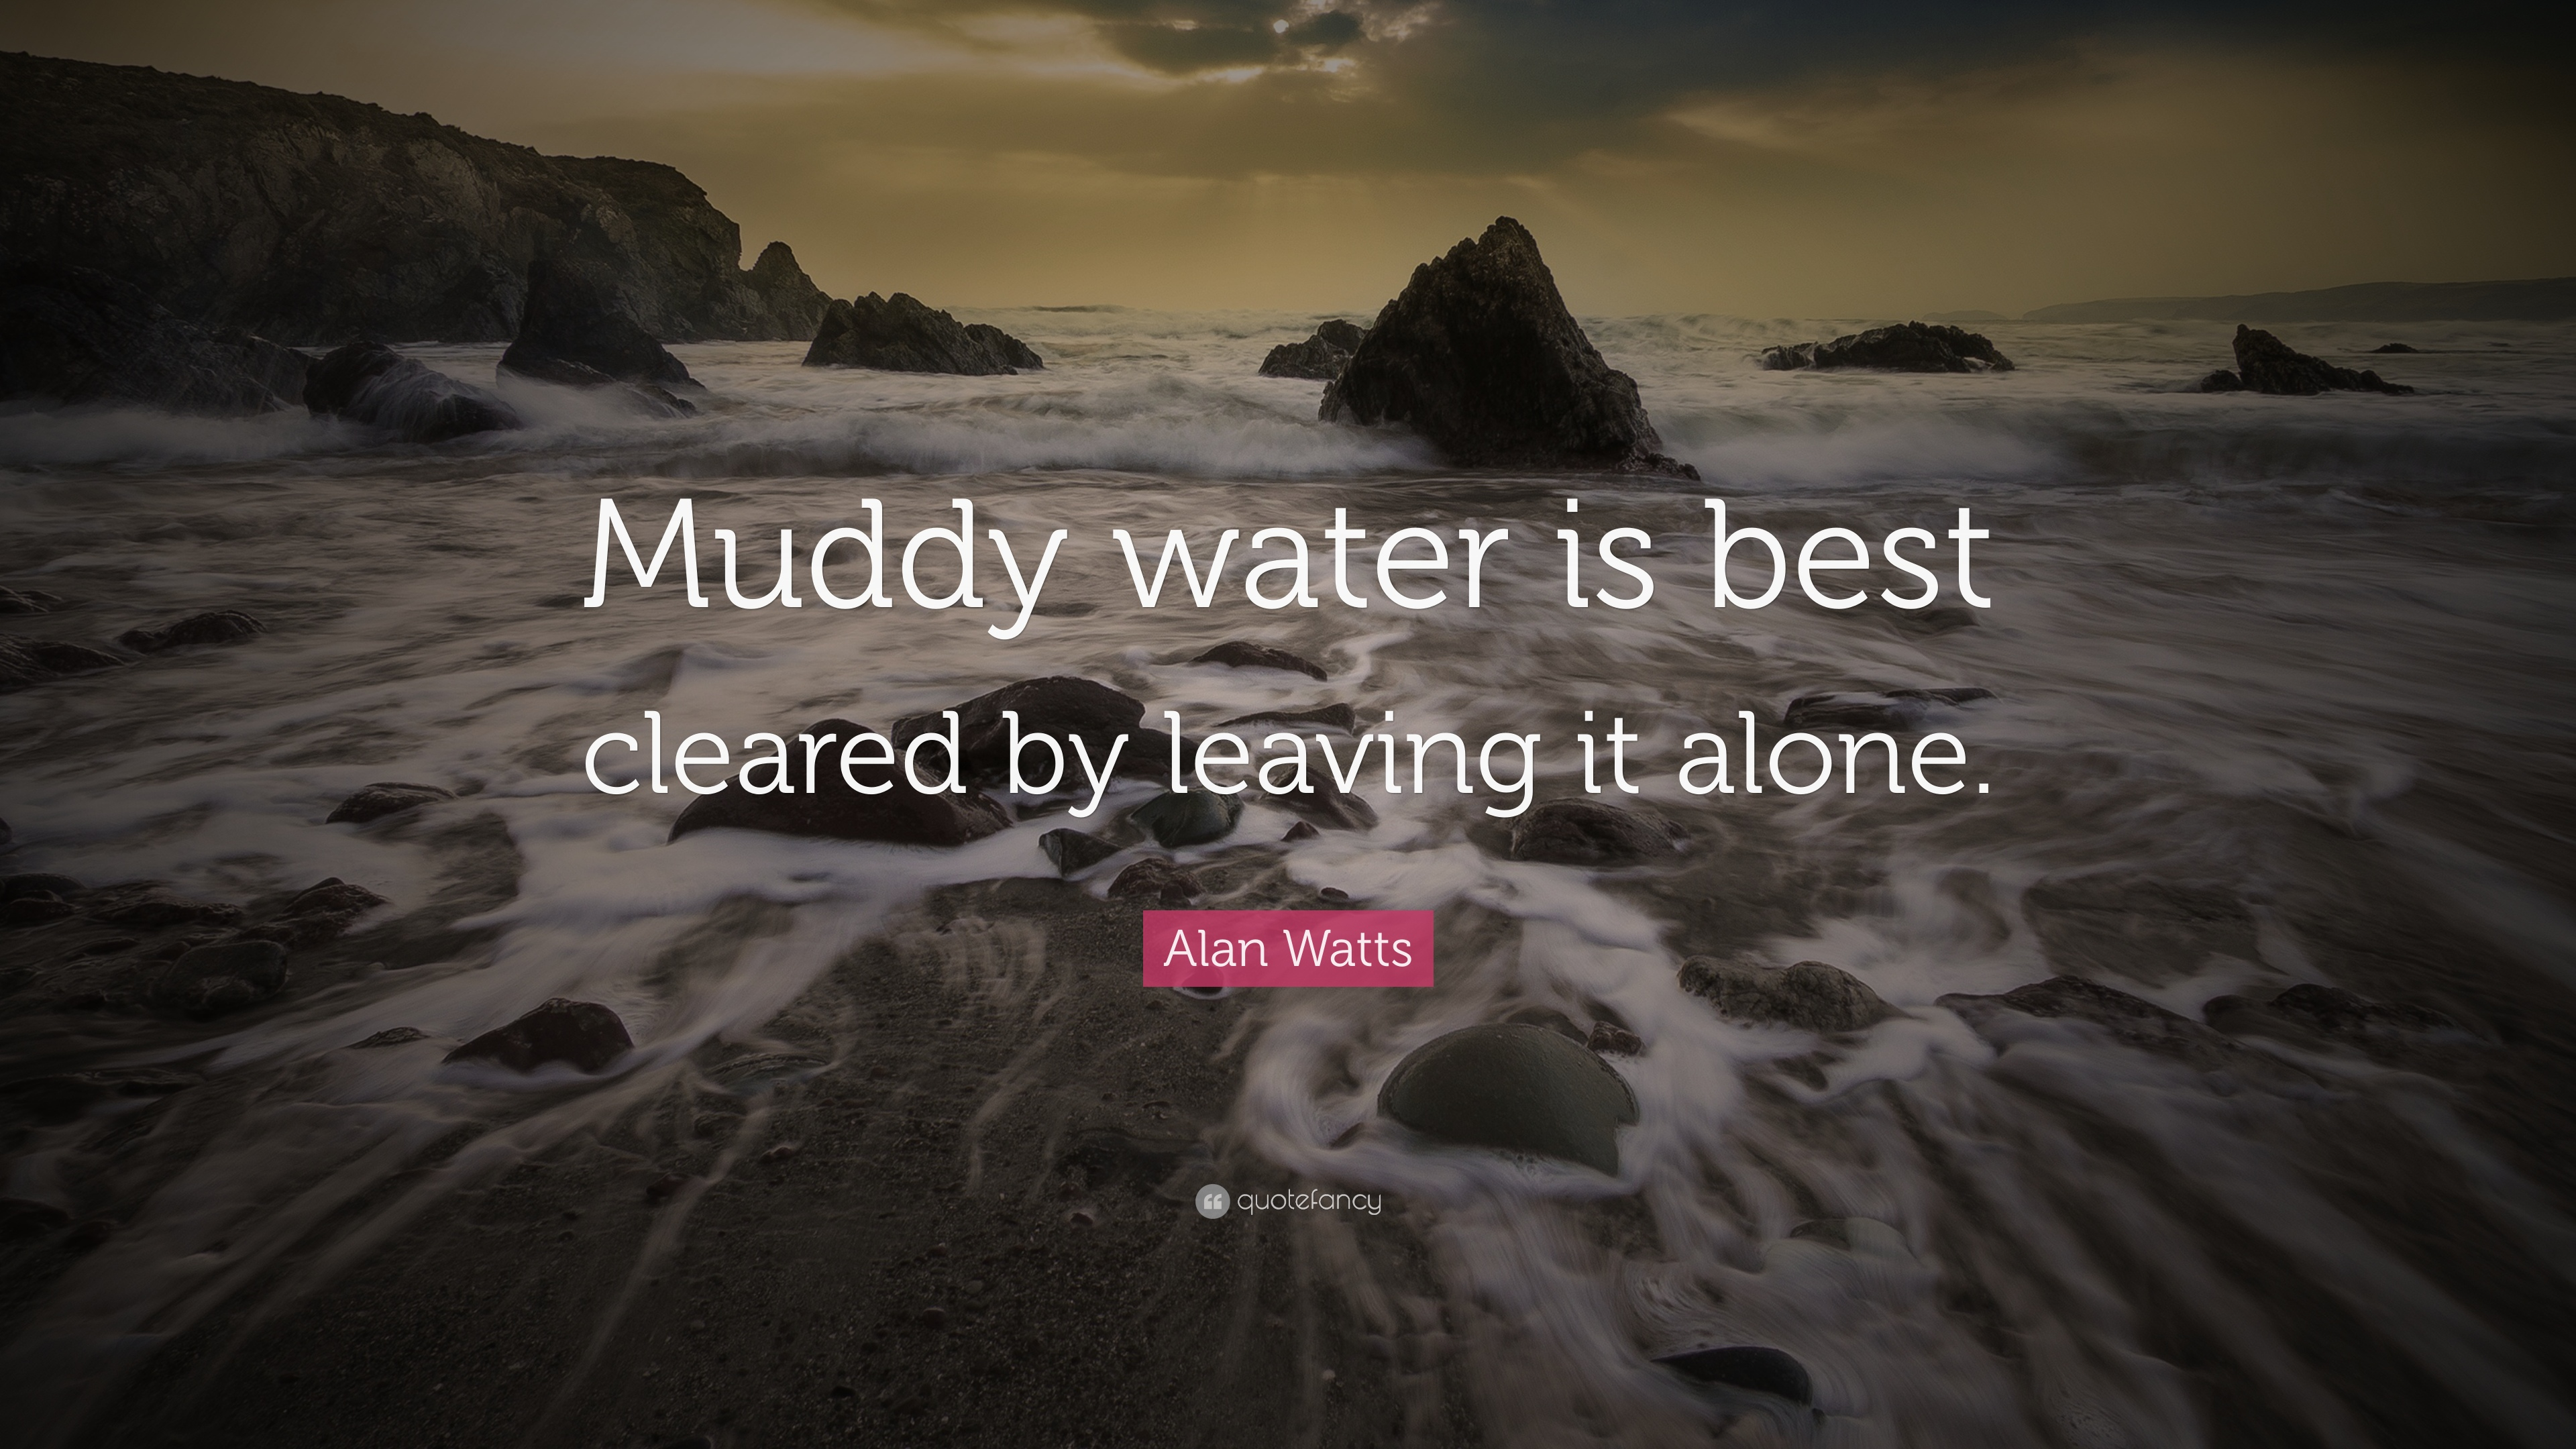 Quotes About Water Quotes About Water 40 Wallpapers  Quotefancy